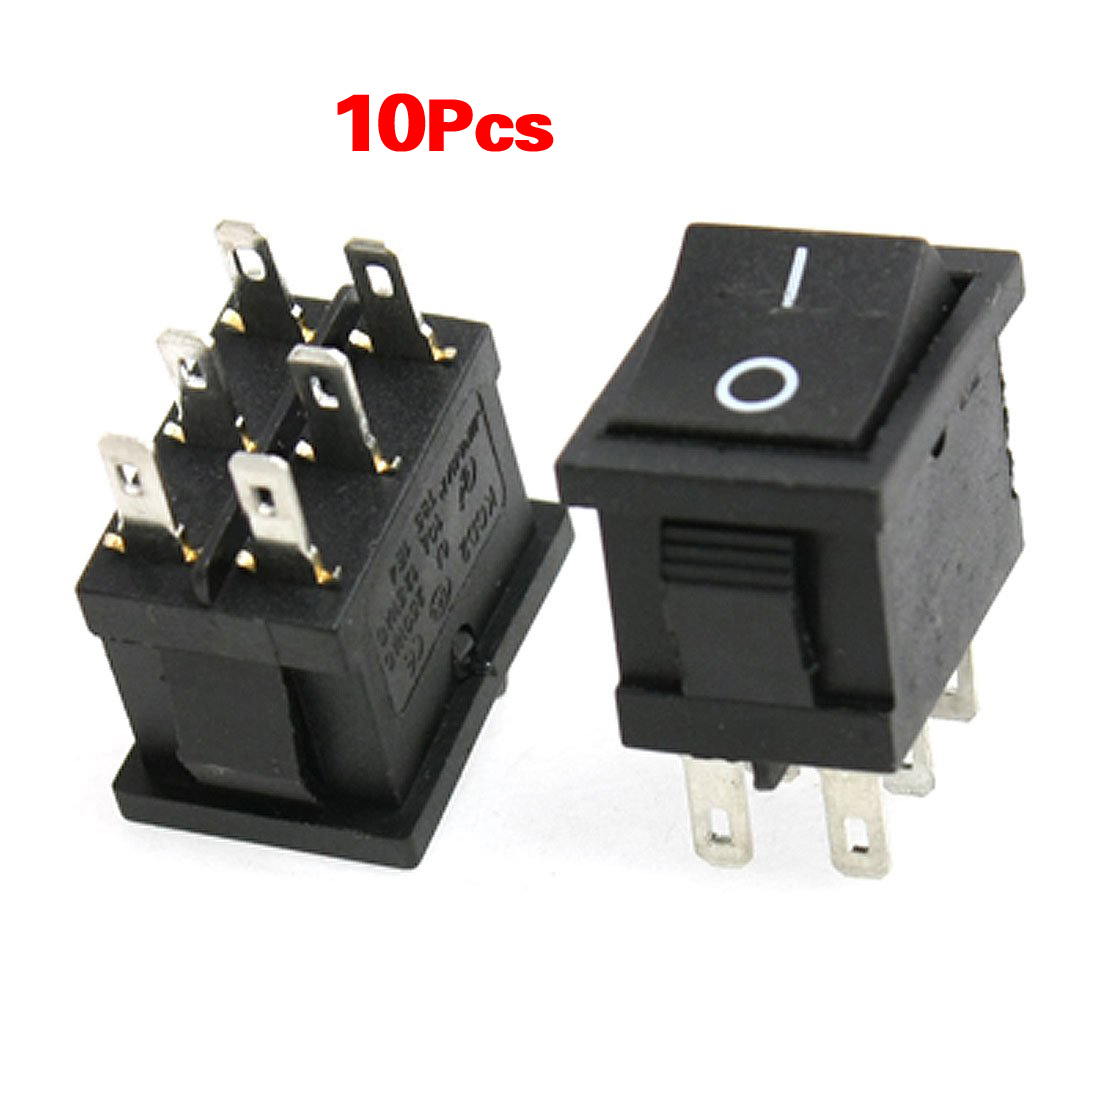 Promotion! 10pcs AC 6A/250V 10A/125V 6 Pin DPDT ON/ON 2 Position Snap In Boat Rocker Switch 5 pcs promotion green light 4 pin dpst on off snap in boat rocker switch 16a 250v 15a 125v ac